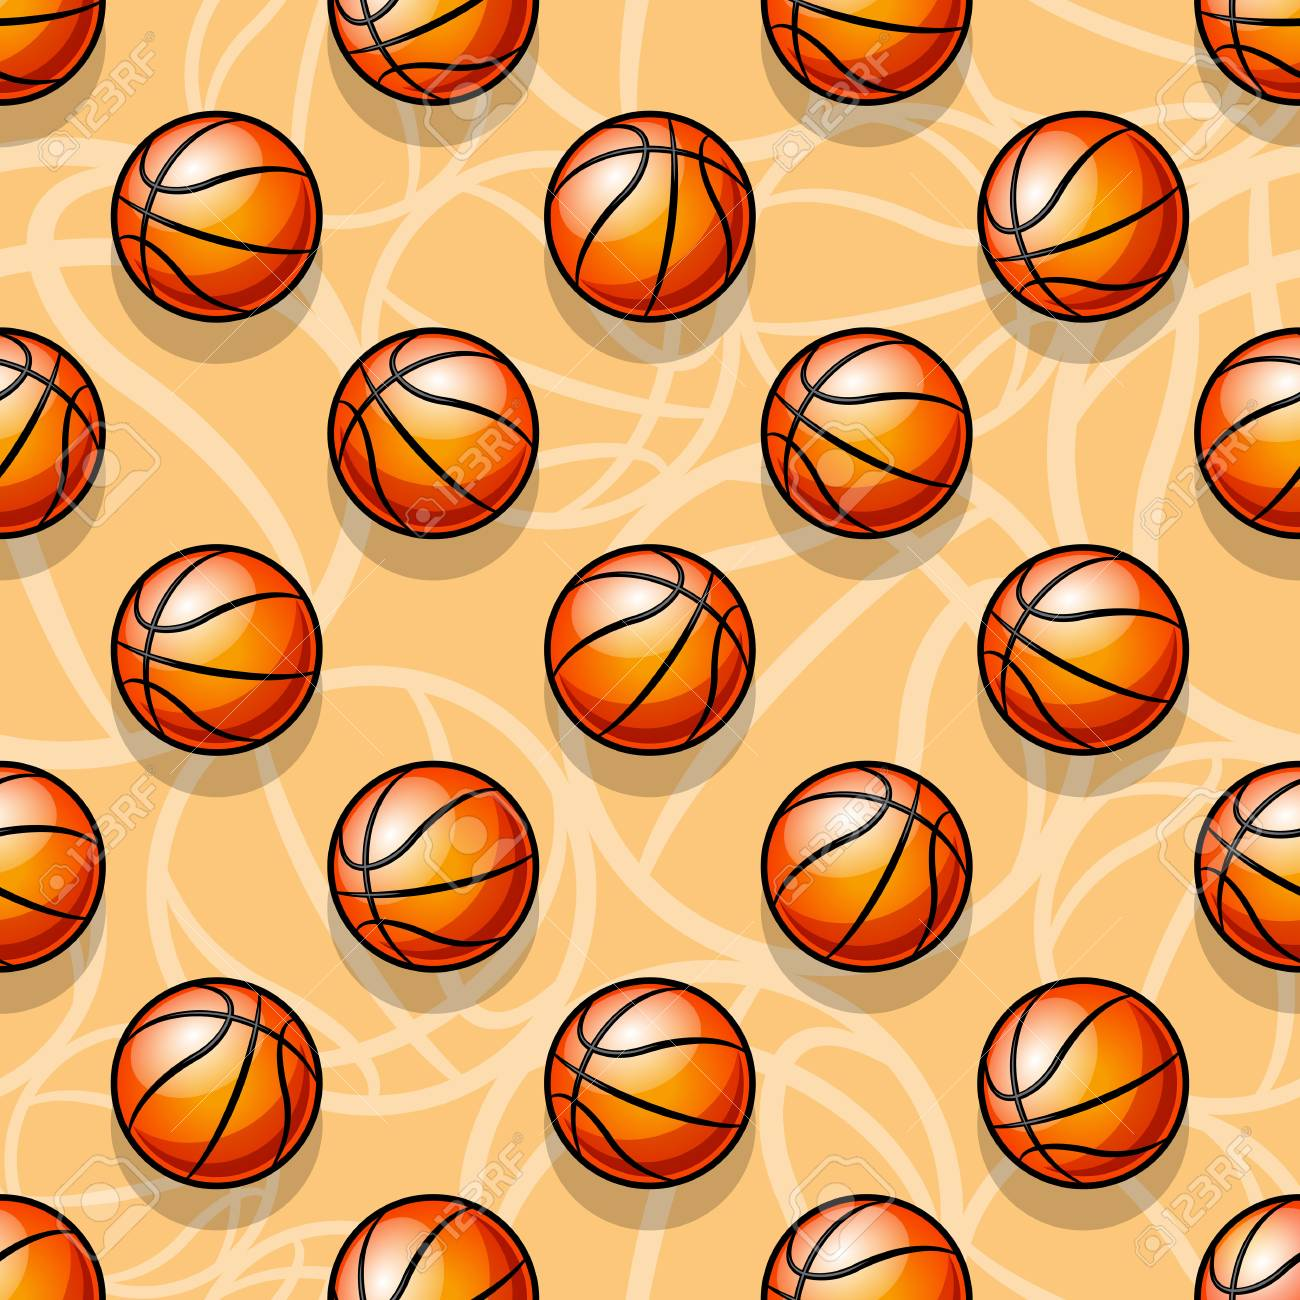 Seamless Pattern With Basketball Ball Vector Illustration Ideal